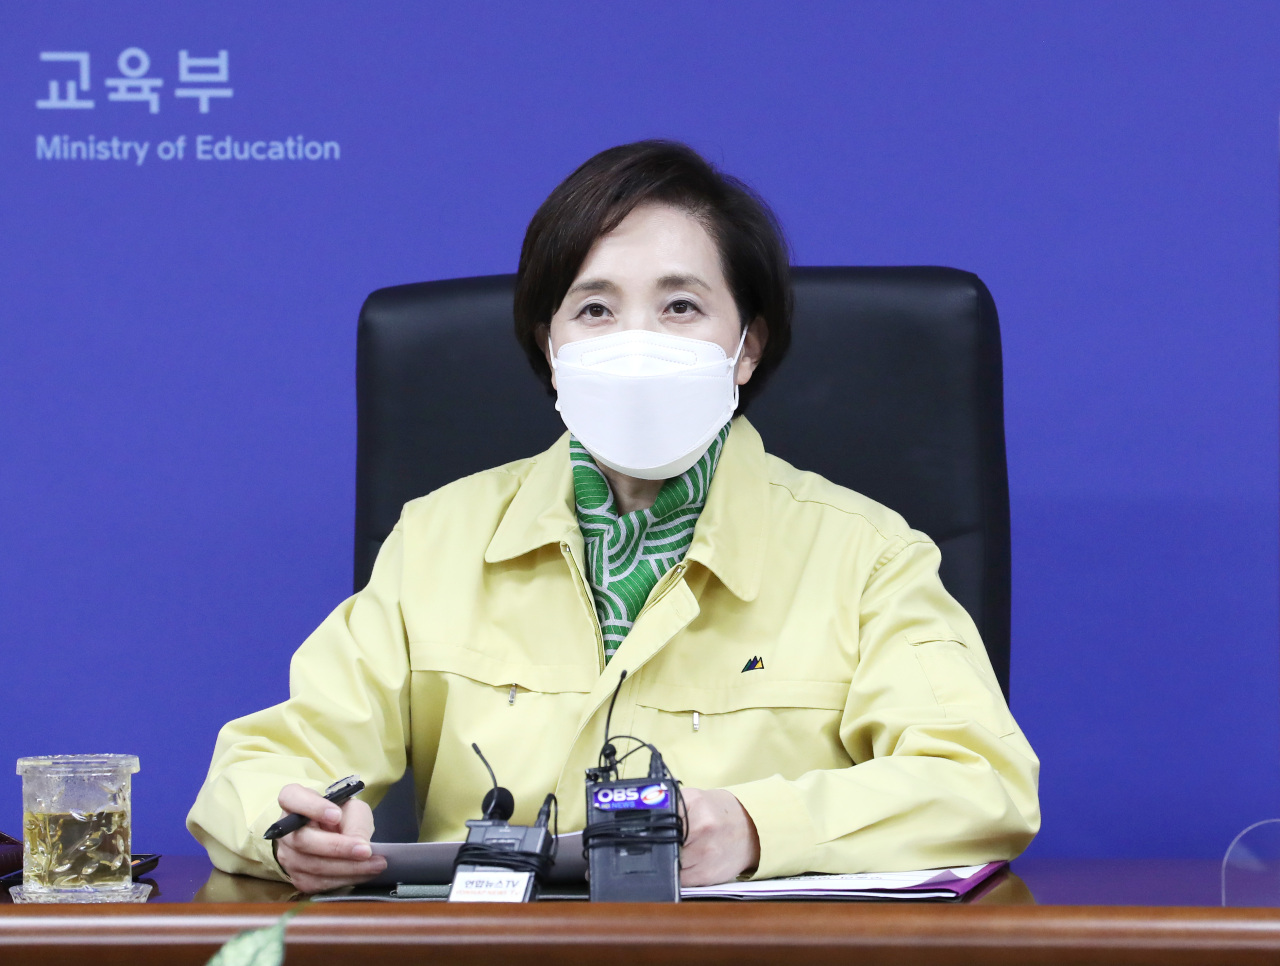 Education Minister Yoo Eun-hae speaks during a meeting held in Sejong on Wednesday. (Yonhap)